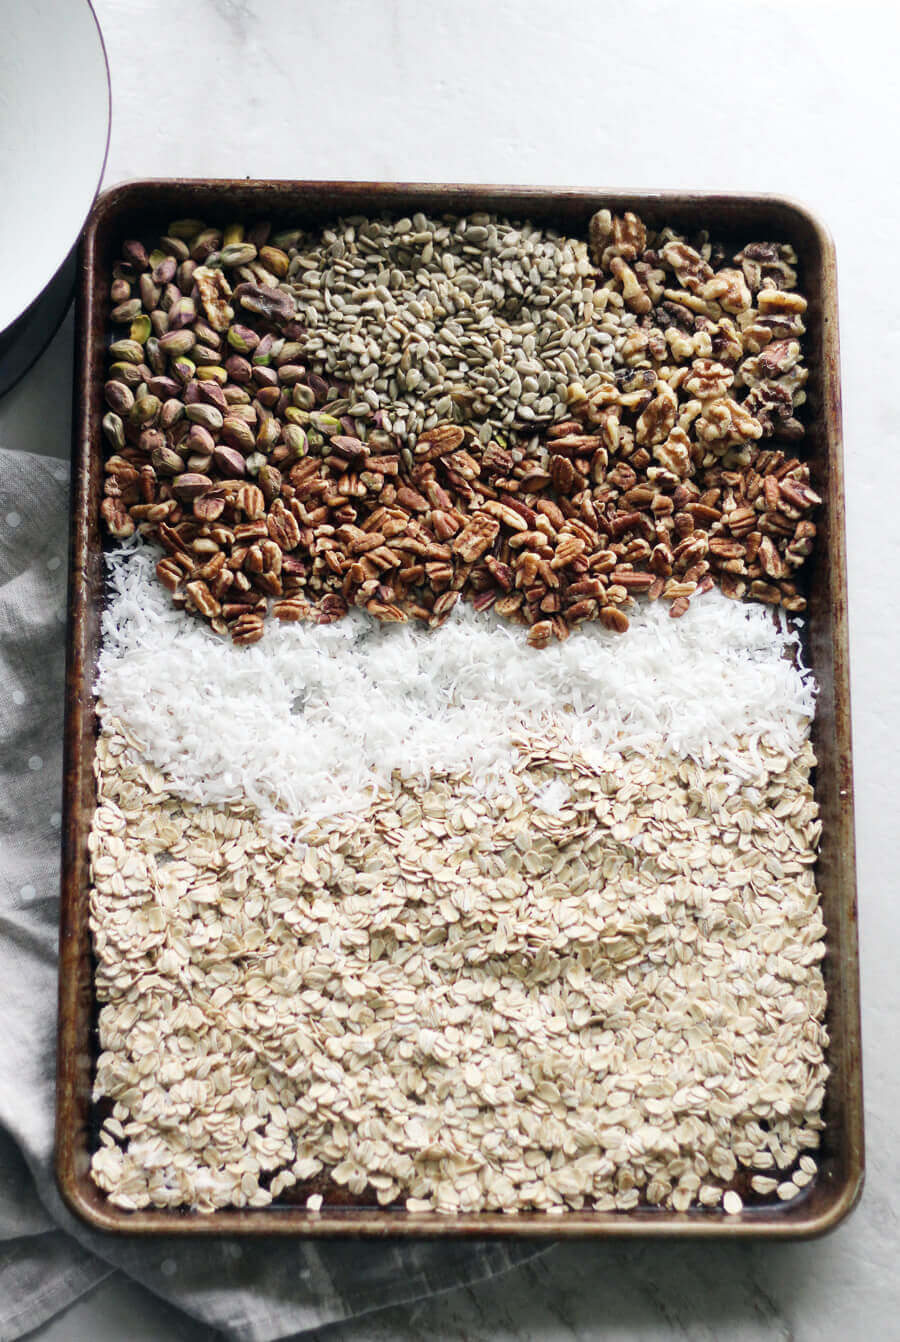 A baking sheet of oatmeal, coconut, pecans and pistachios